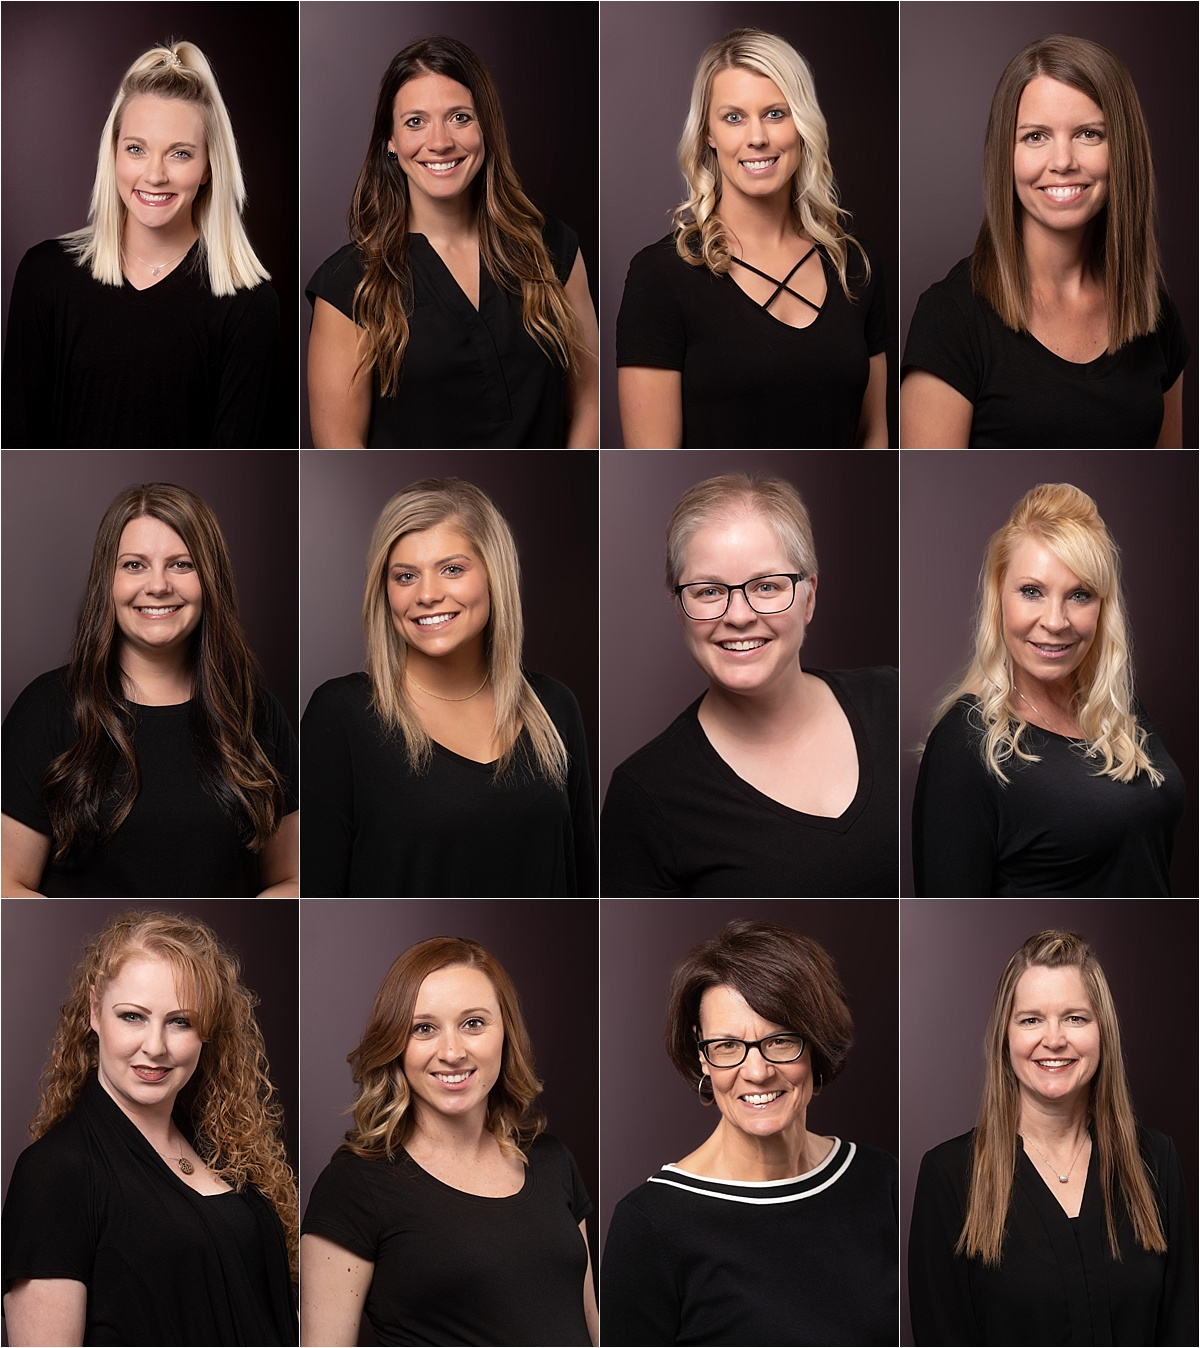 The staff of Dental Essence in Sioux Falls, SD.